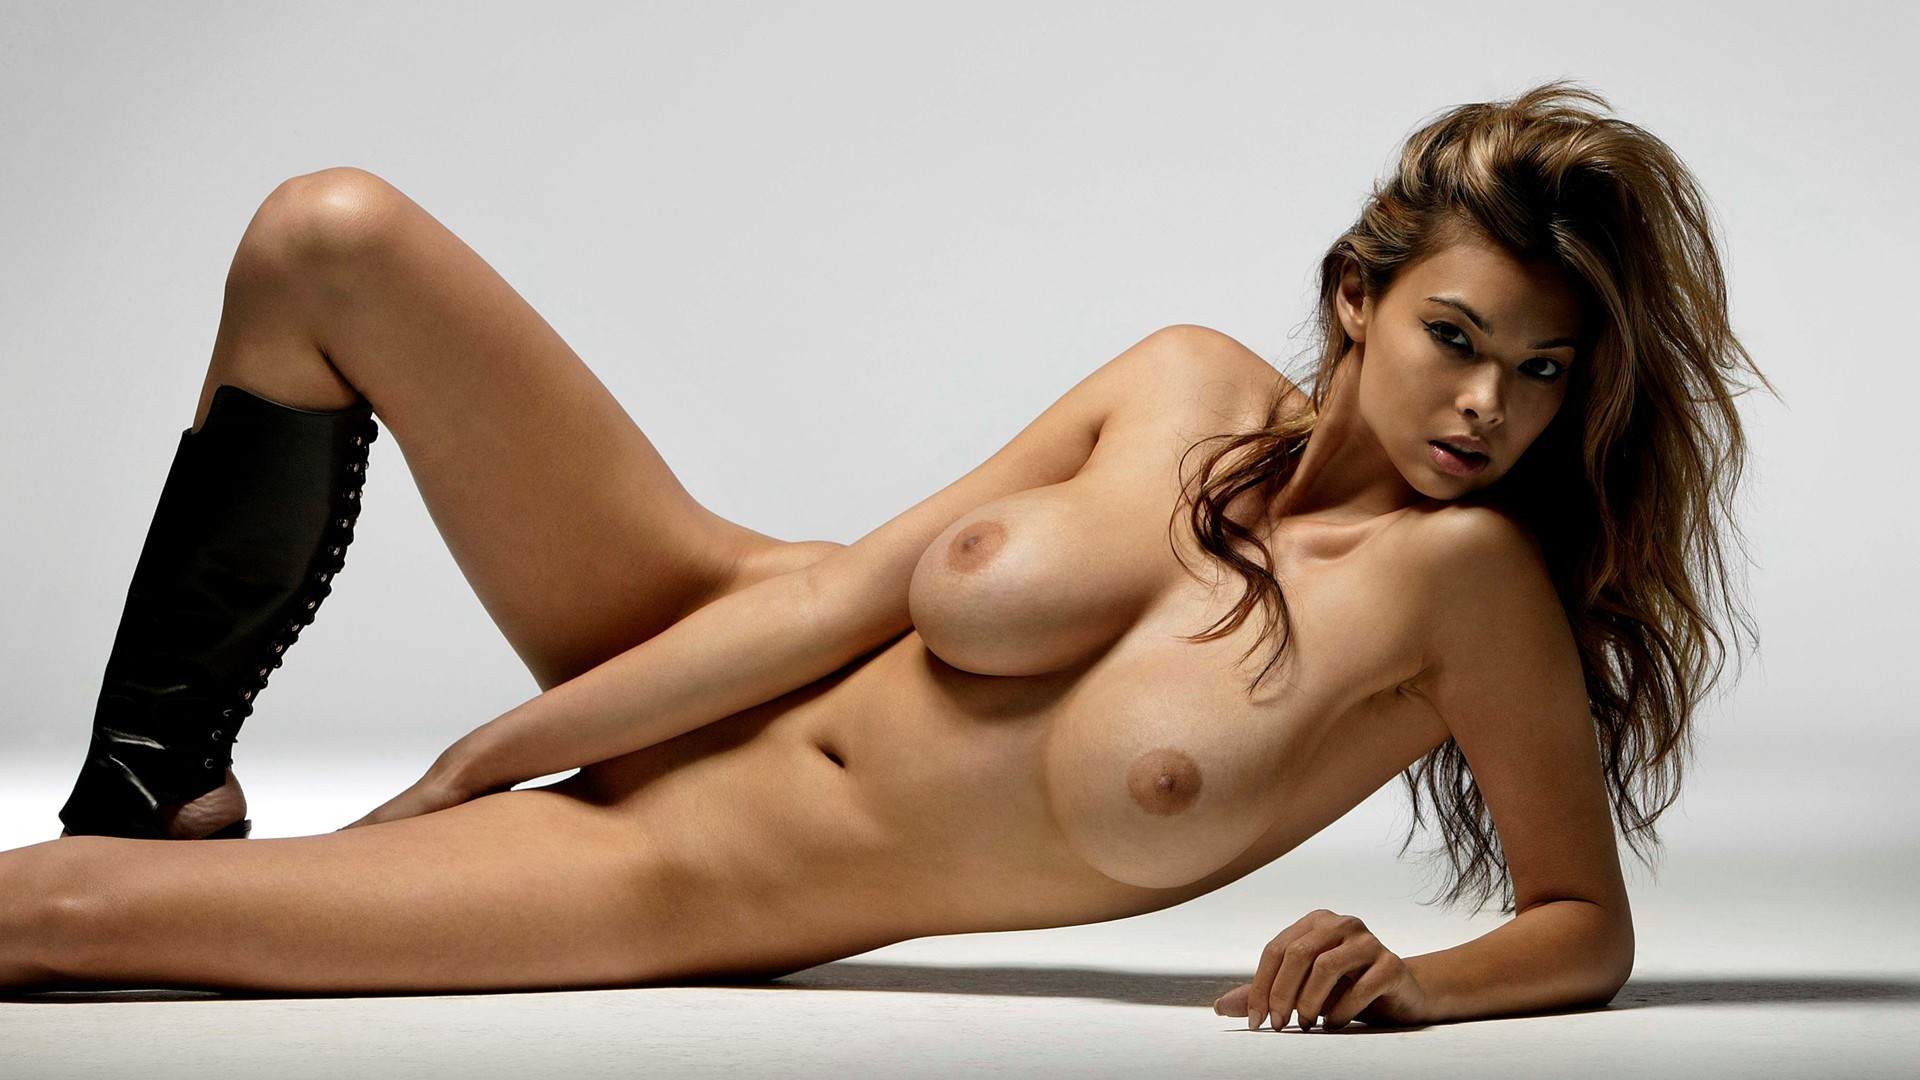 sexiest-pictures-of-aj-naked